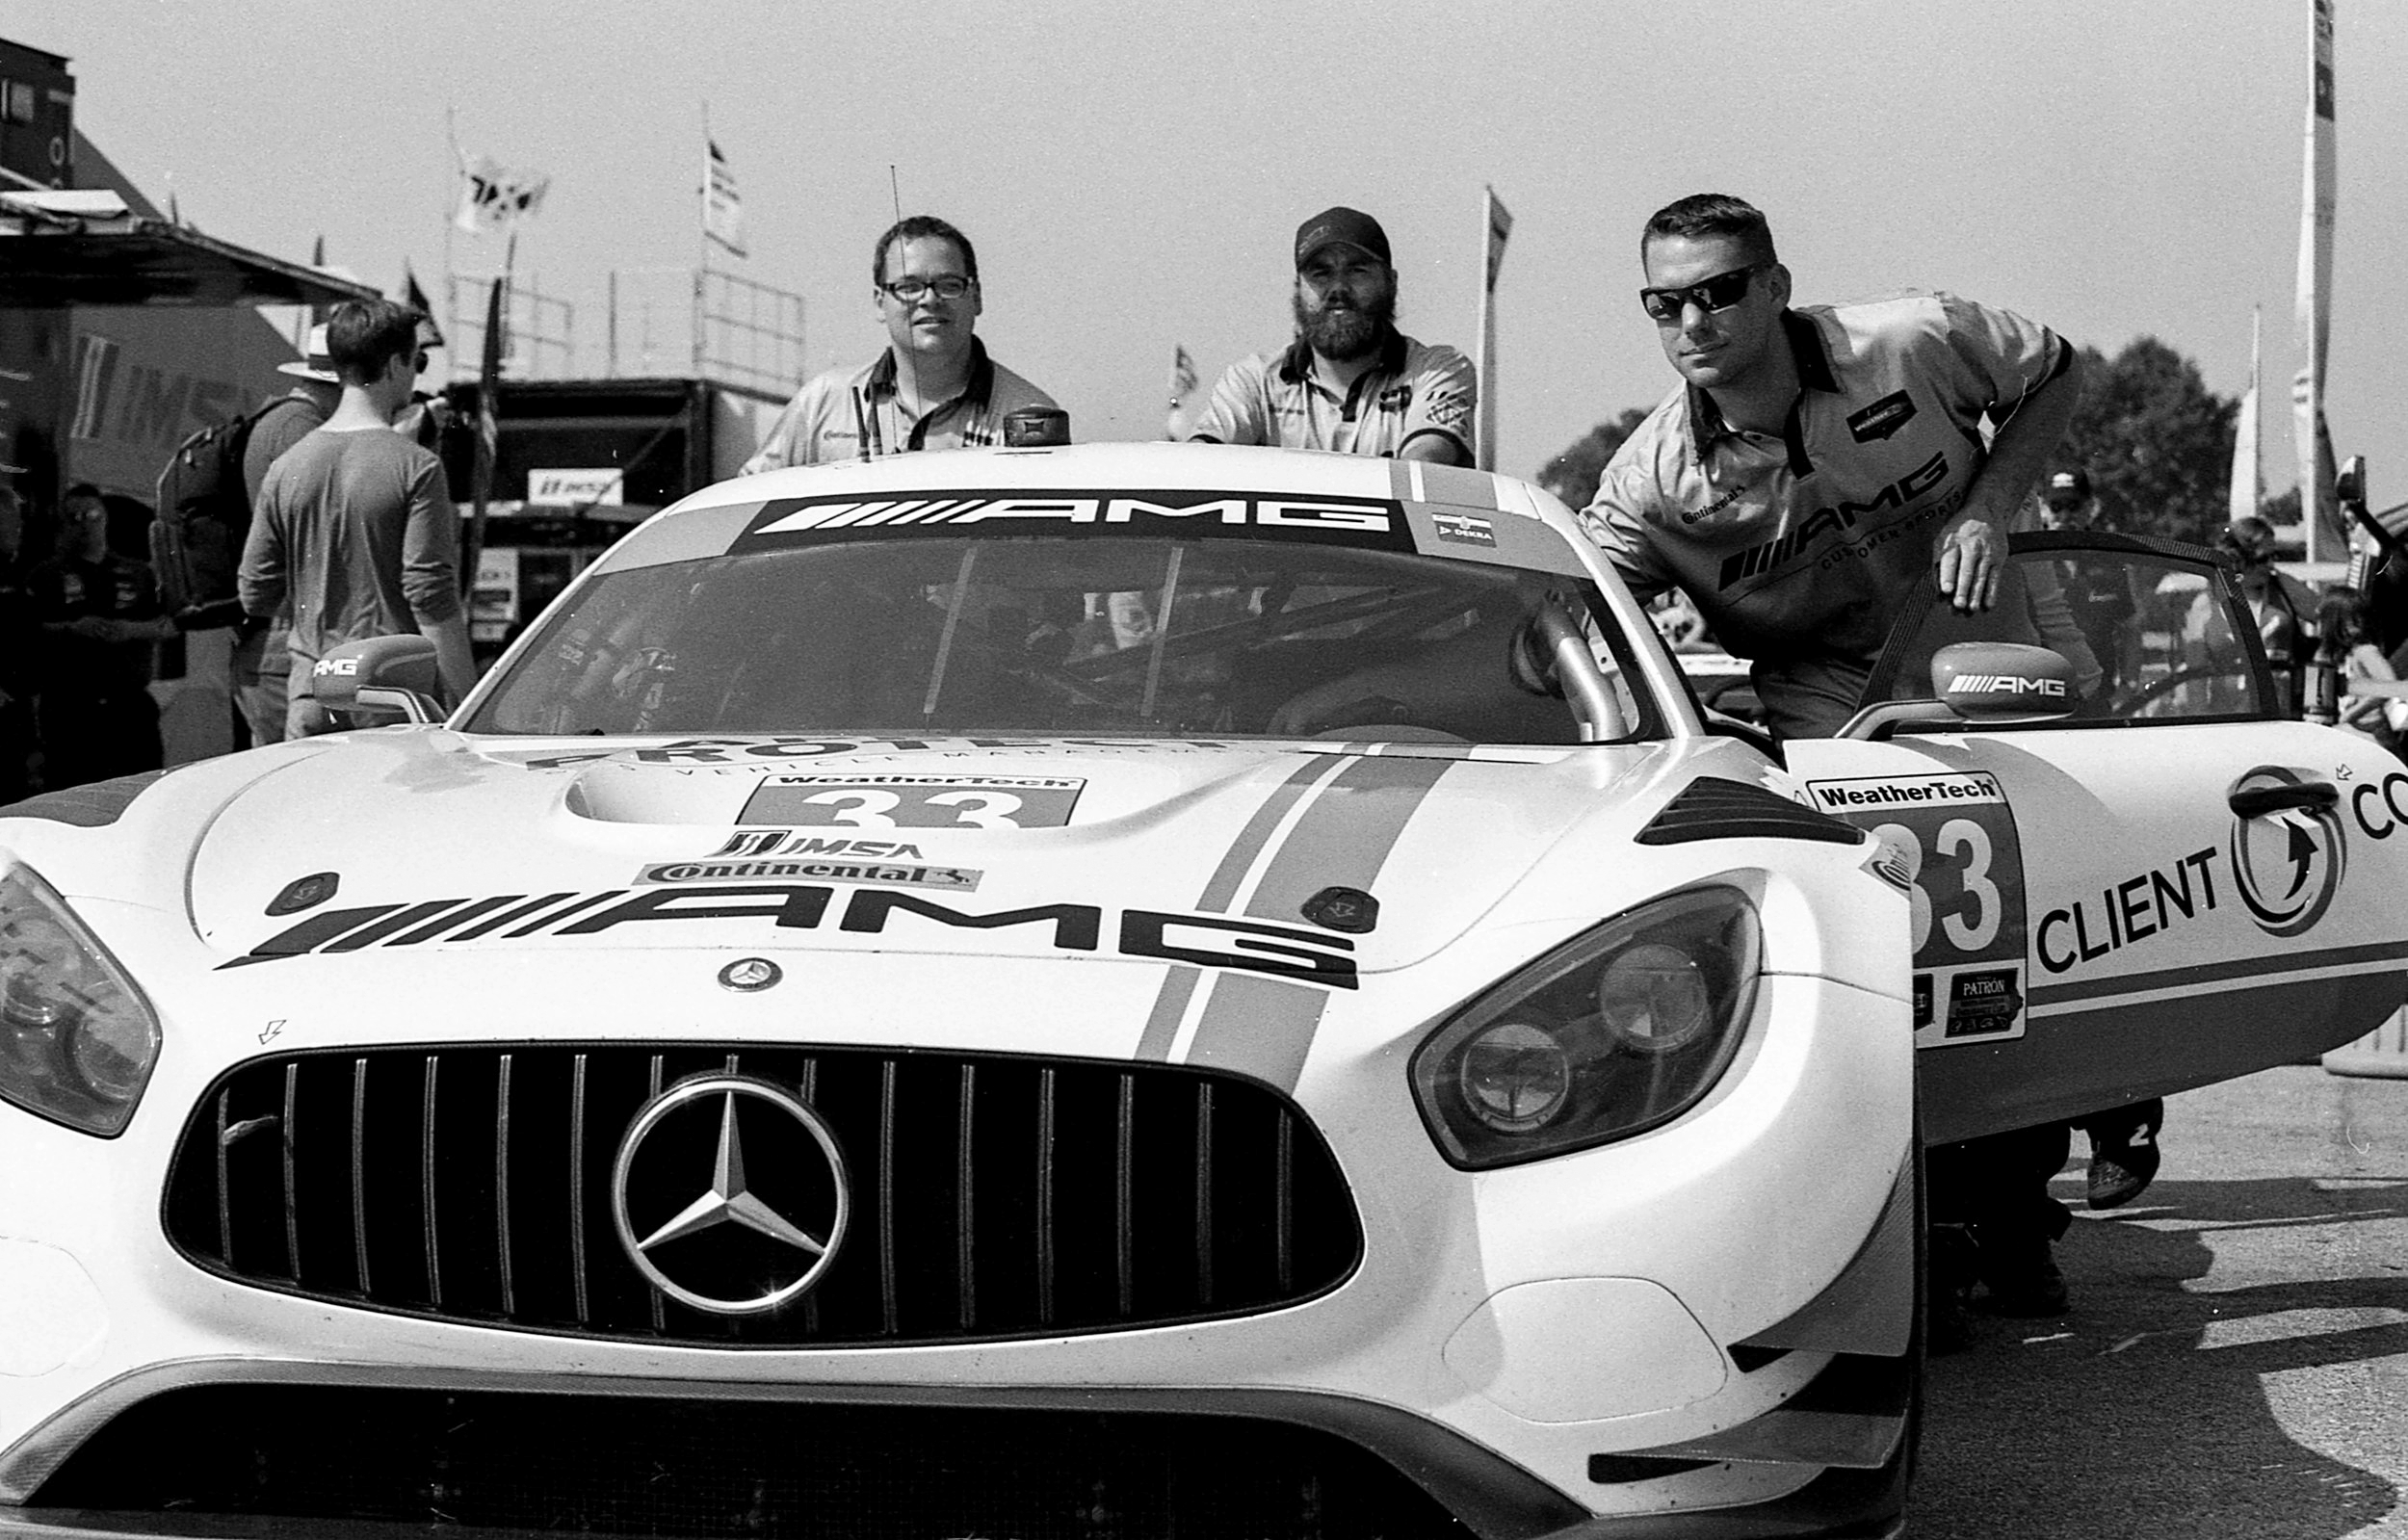 A gentleman's chariot, Mercedes AMG GT car getting prepped to hit the track...